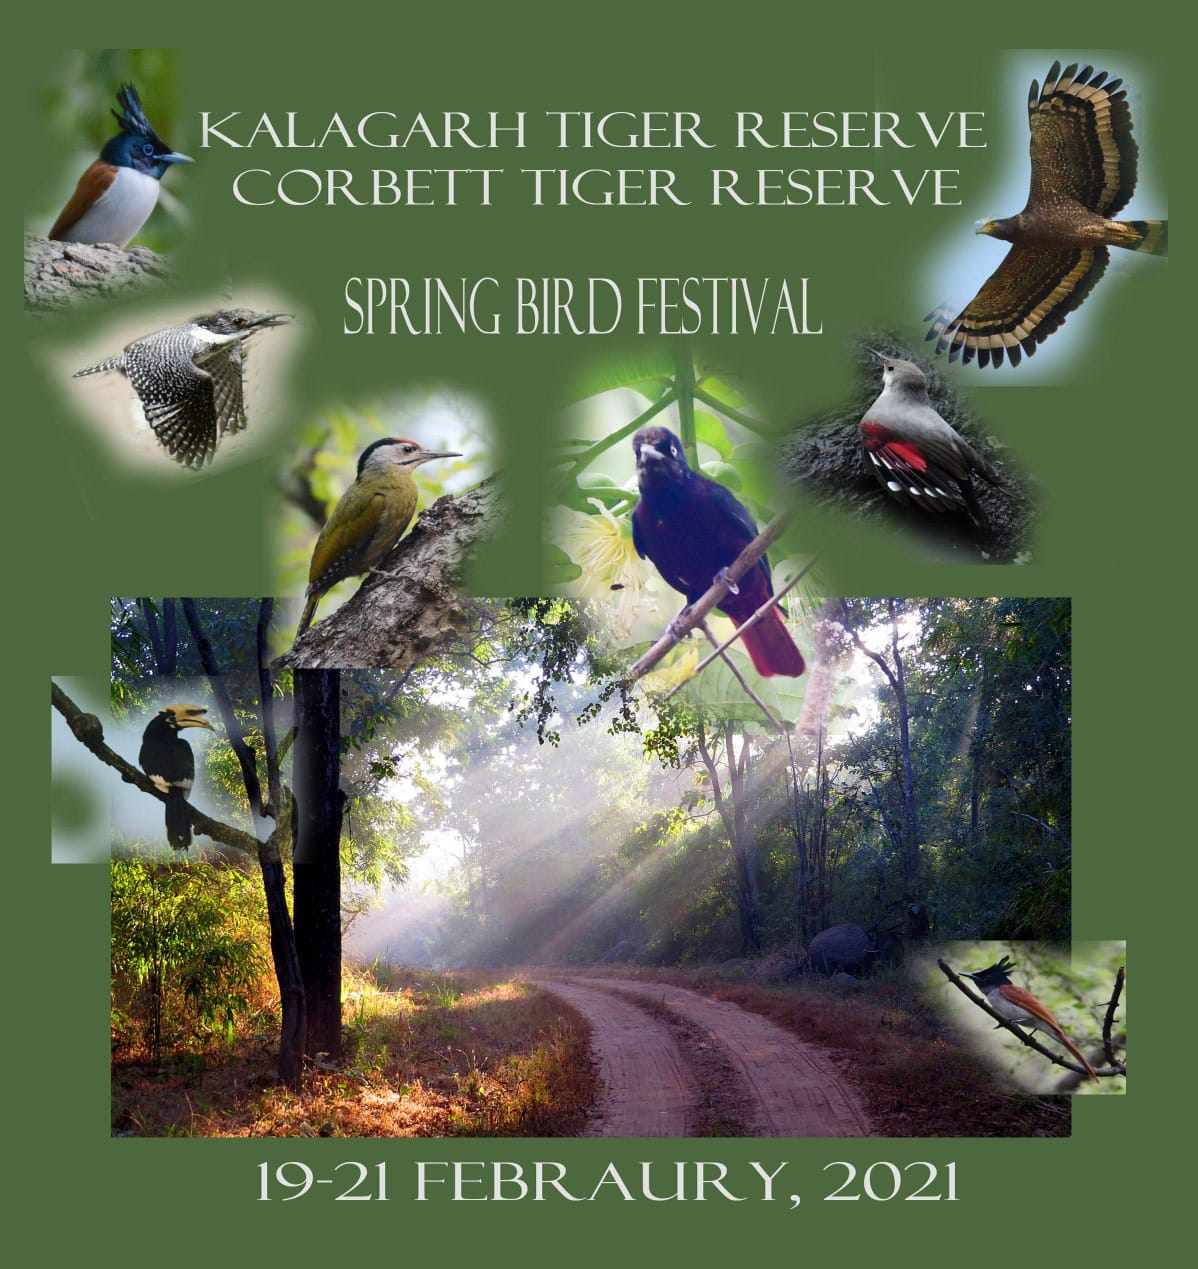 3 days Spring Bird Festival from 19th february to 21st february 2021.